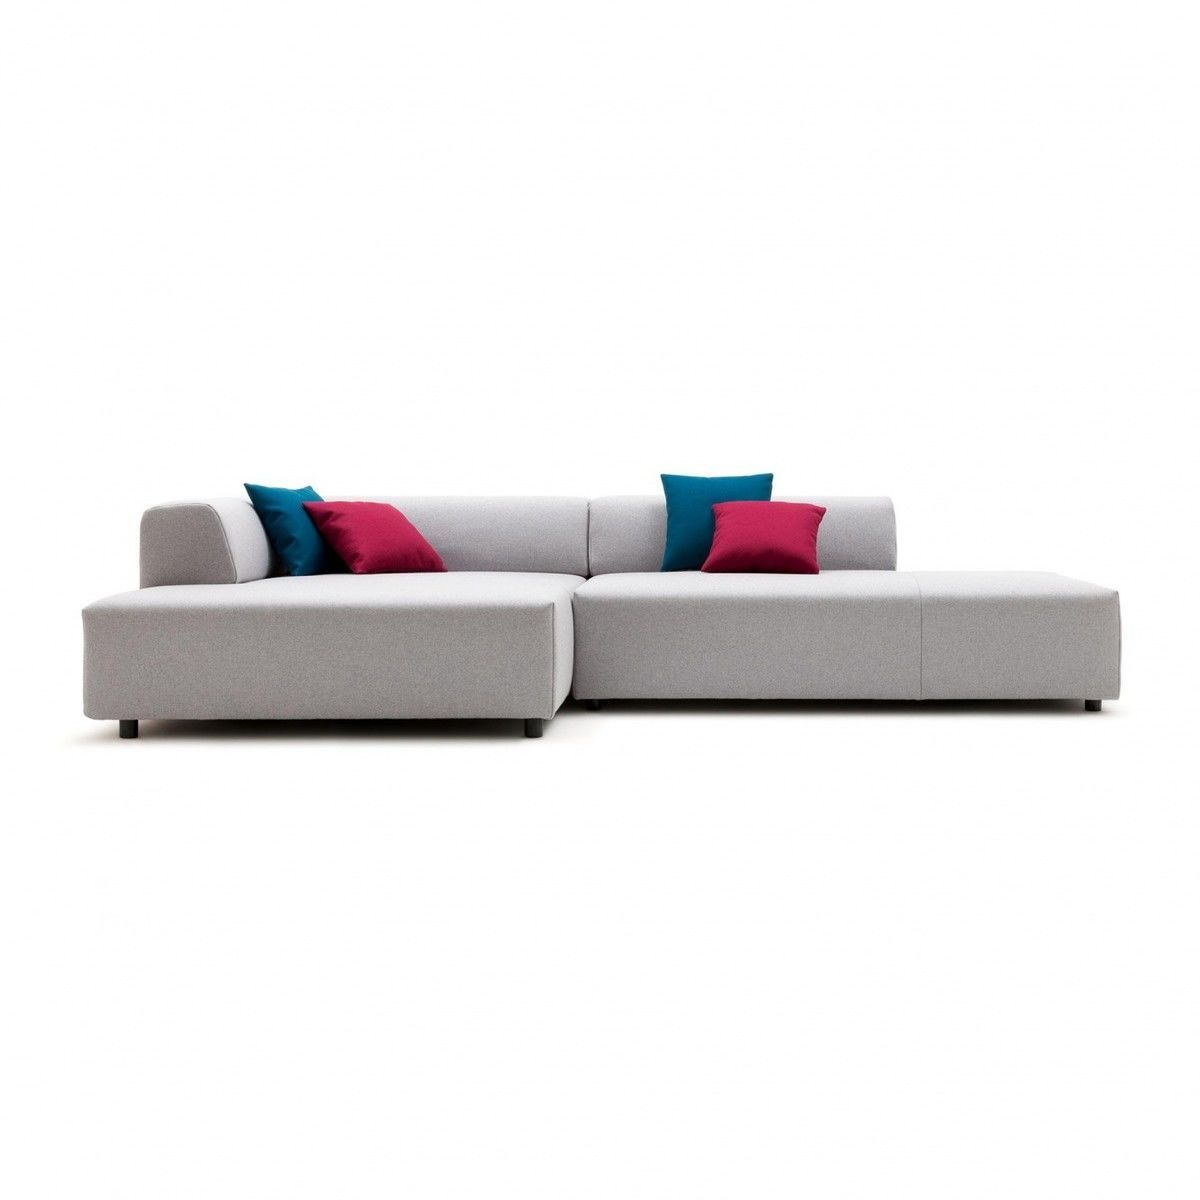 Freistil 184 Freistil 184 Lounge Sofa | Freistil Rolf Benz